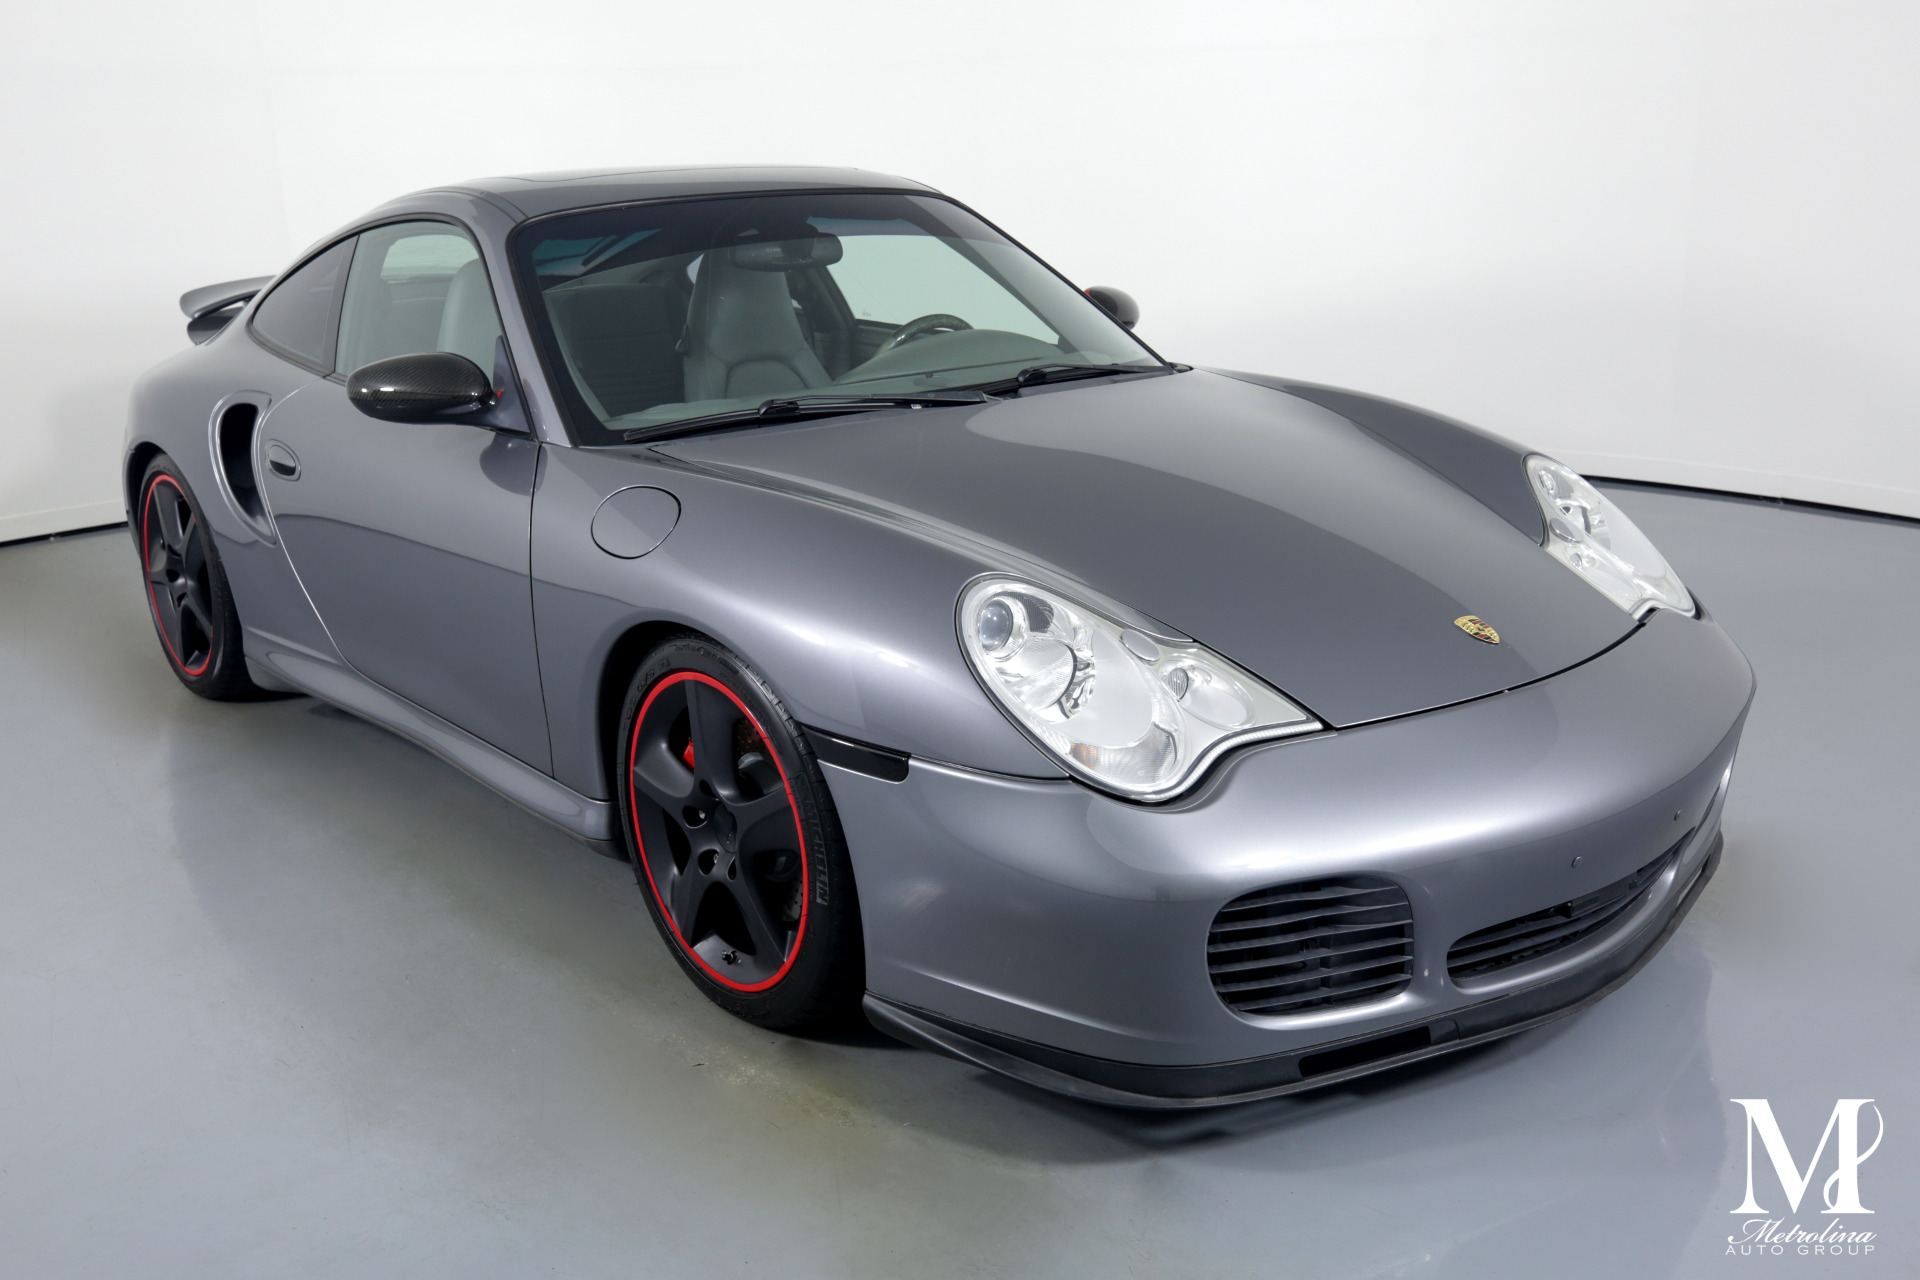 Used 2003 Porsche 911 Turbo for sale $49,996 at Metrolina Auto Group in Charlotte NC 28217 - 2